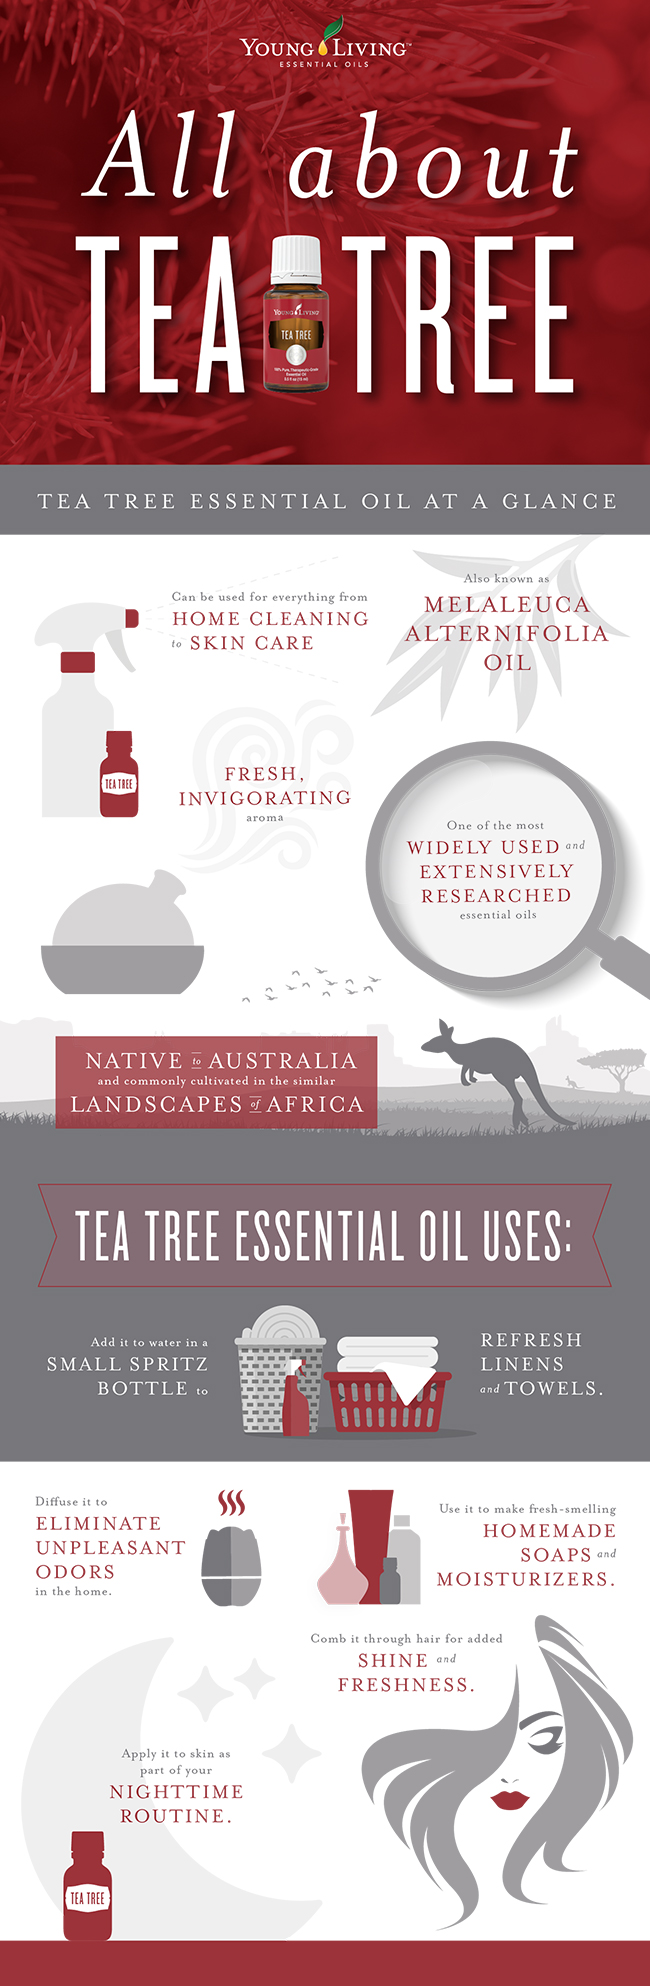 All about Tea Tree essential oil infographic